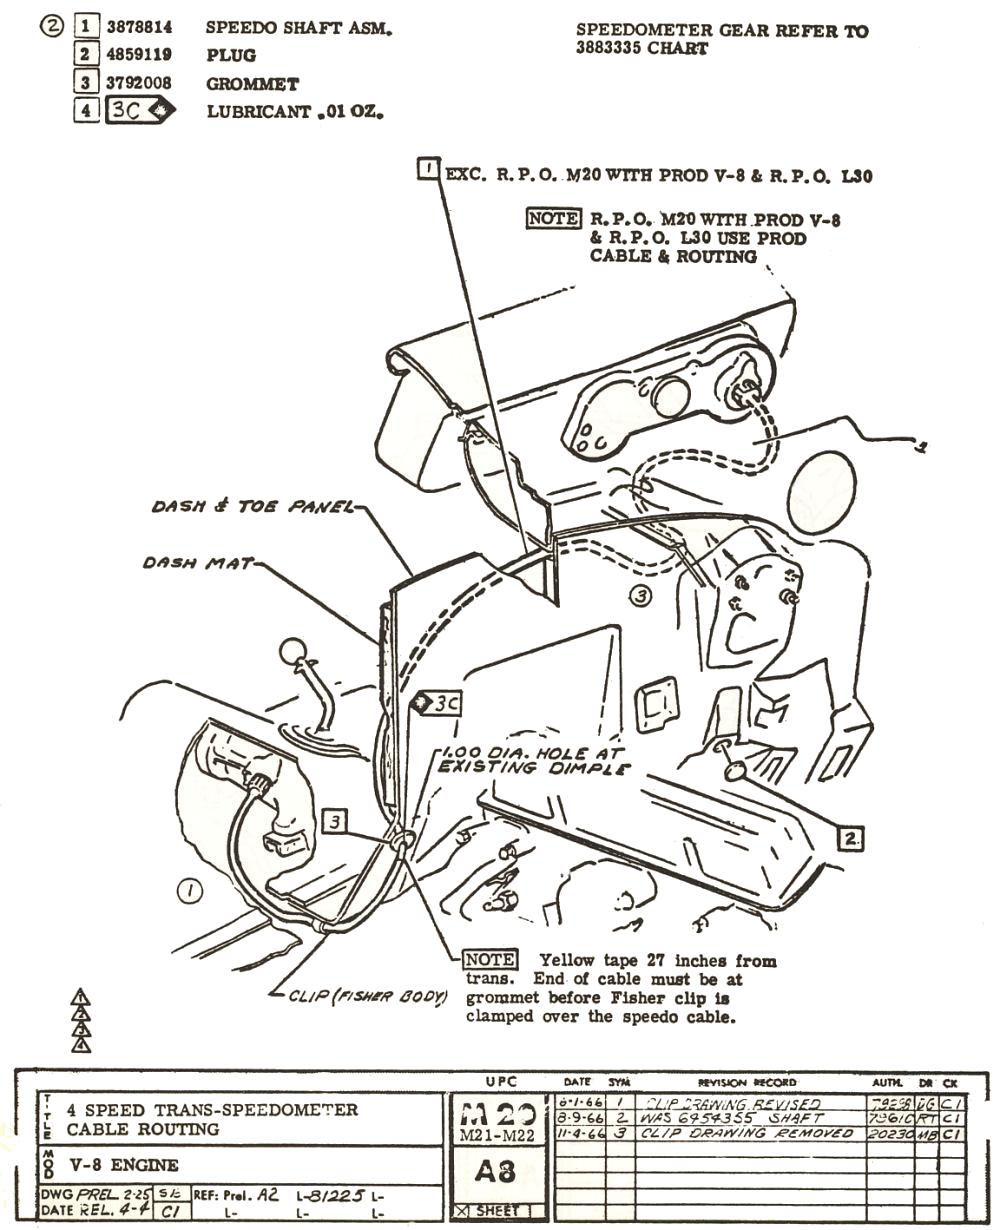 hight resolution of 1967 muncie speedometer cable length and routing 1967 chevelle wiring diagram pdf 1967 chevelle dash wiring diagram